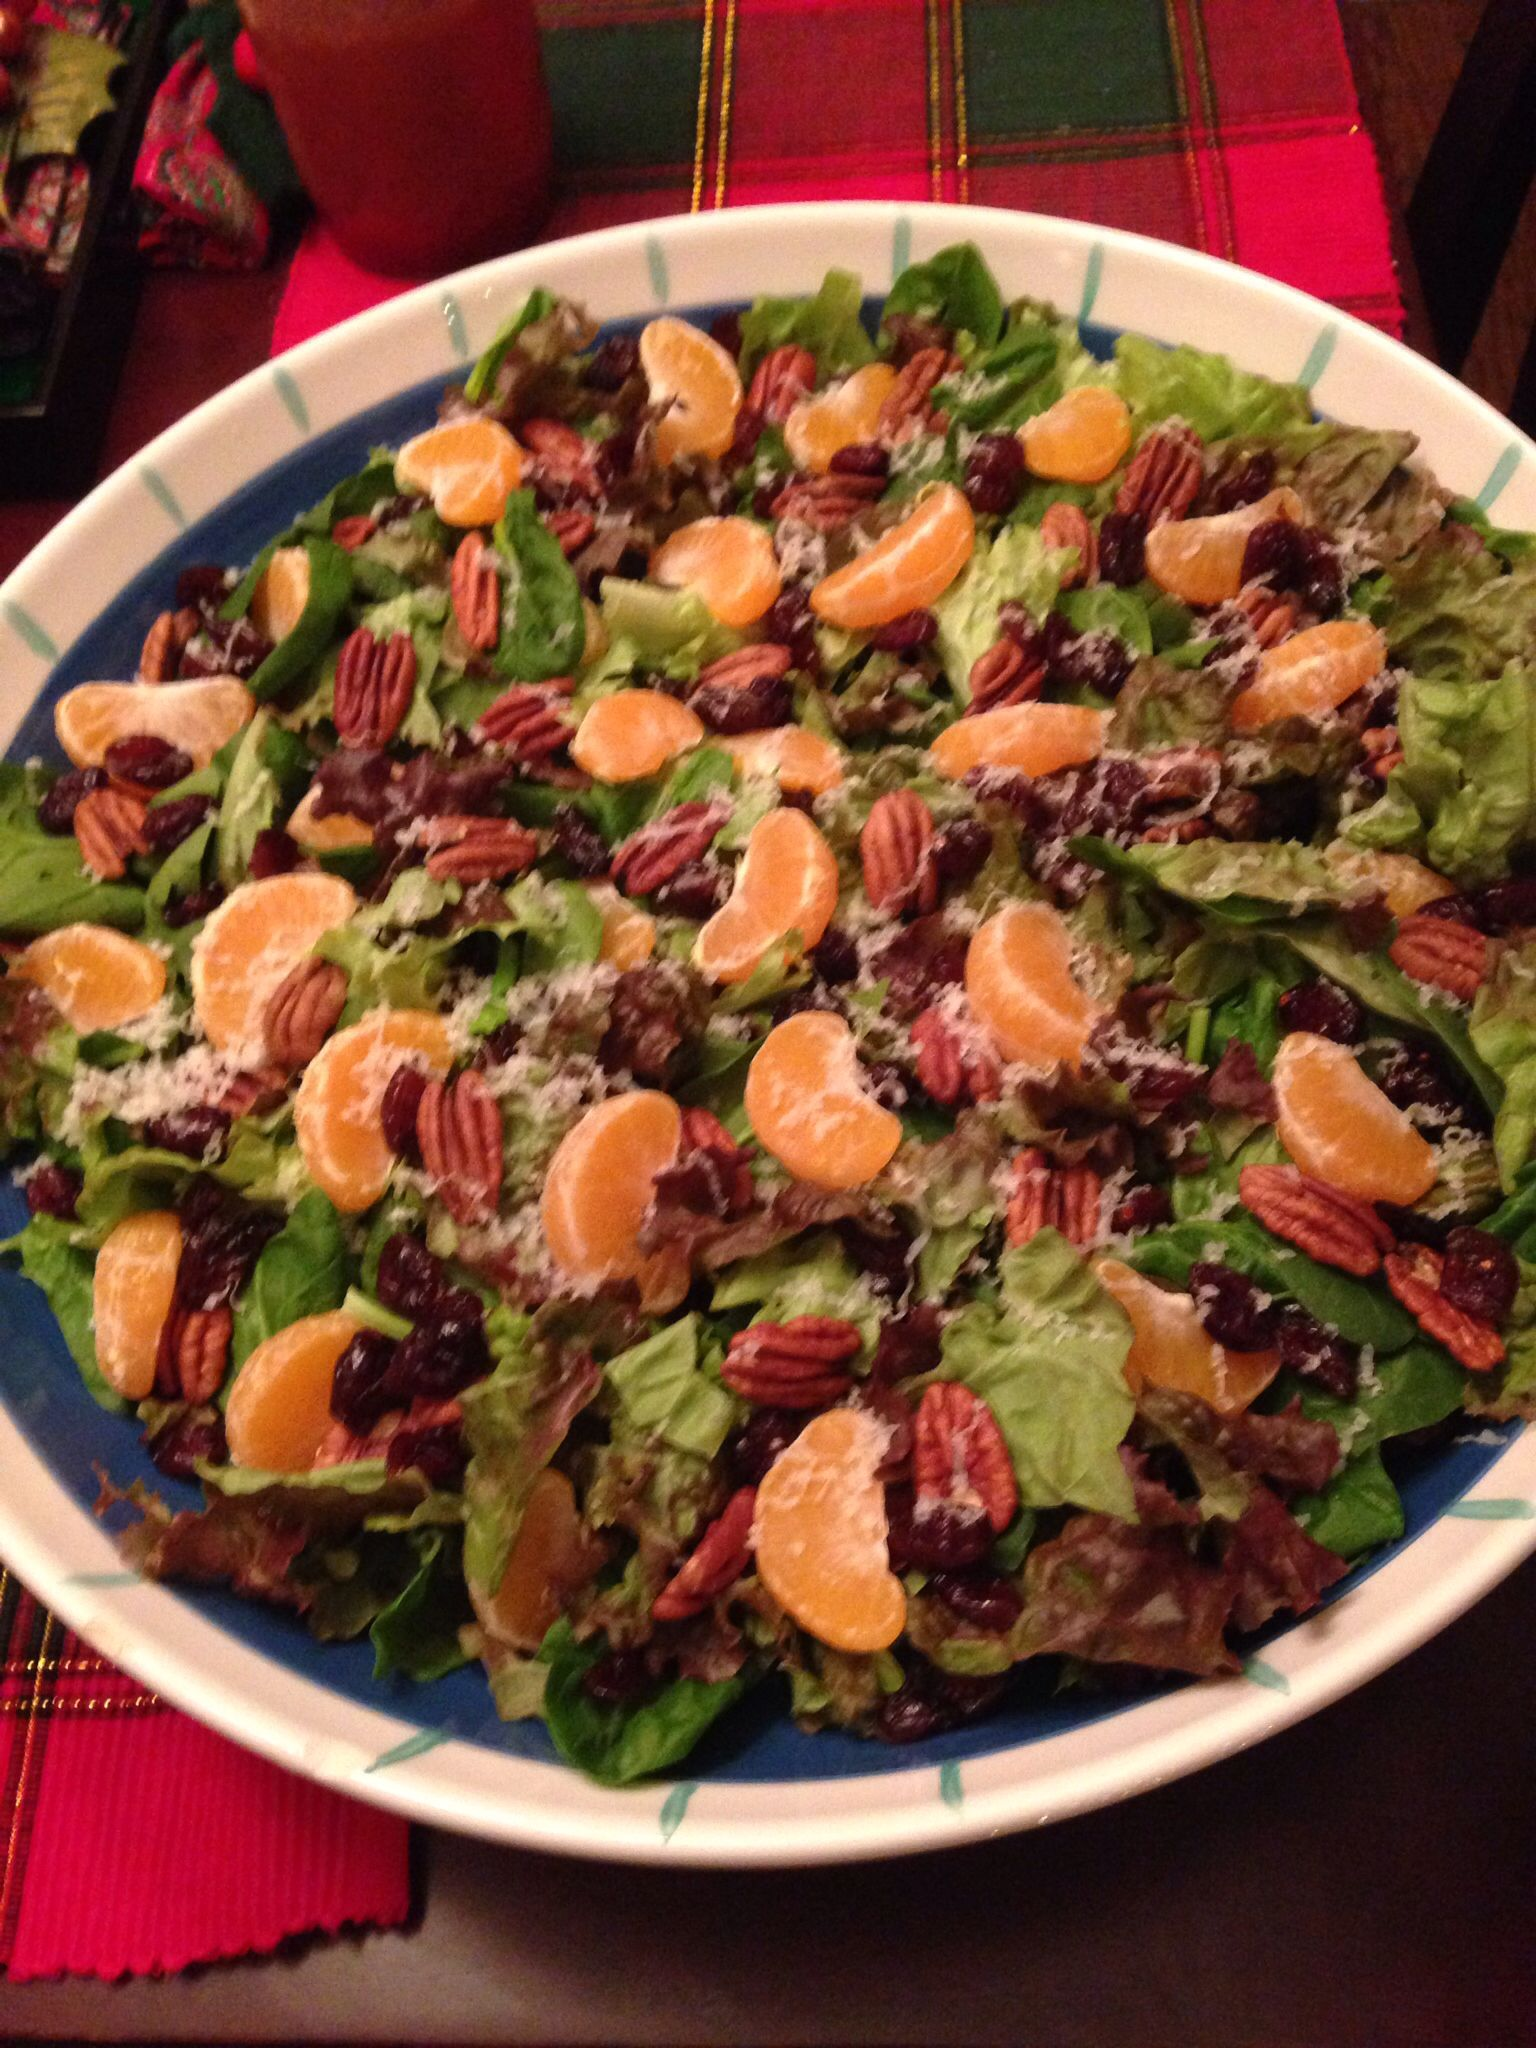 Spinach Salad with Dried Cranberries and Pecans.